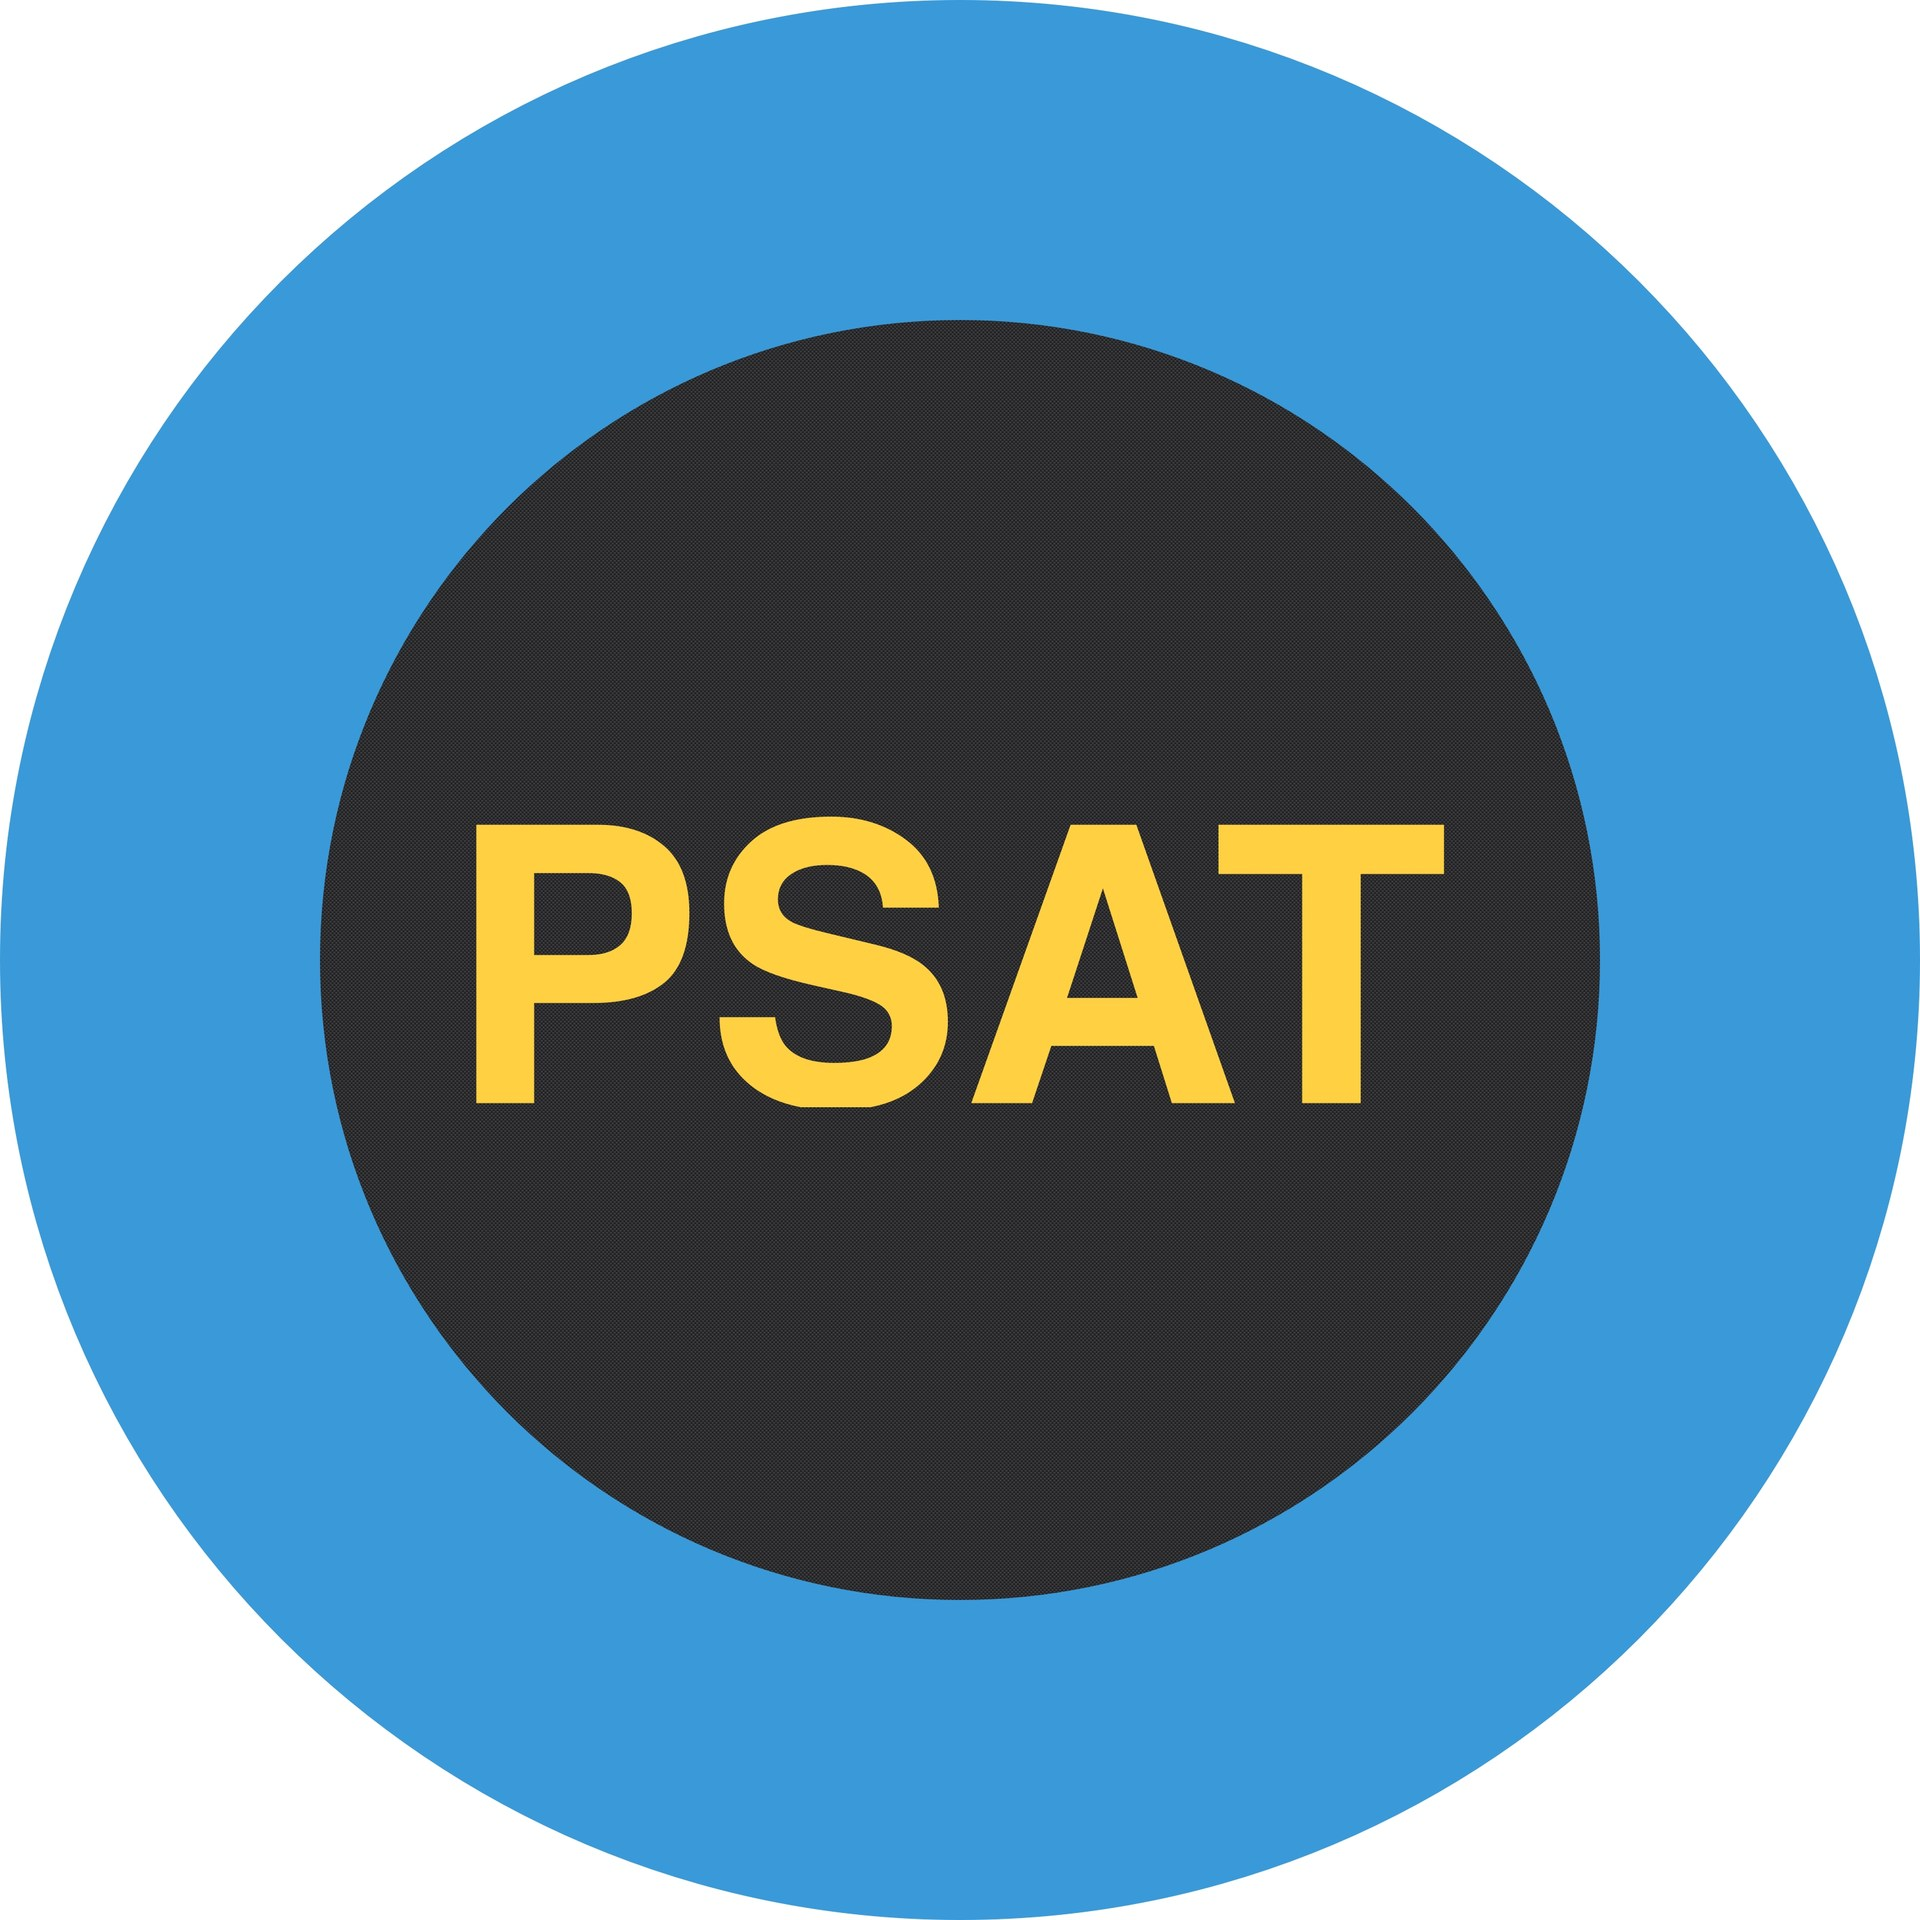 Graphic of word PSAT